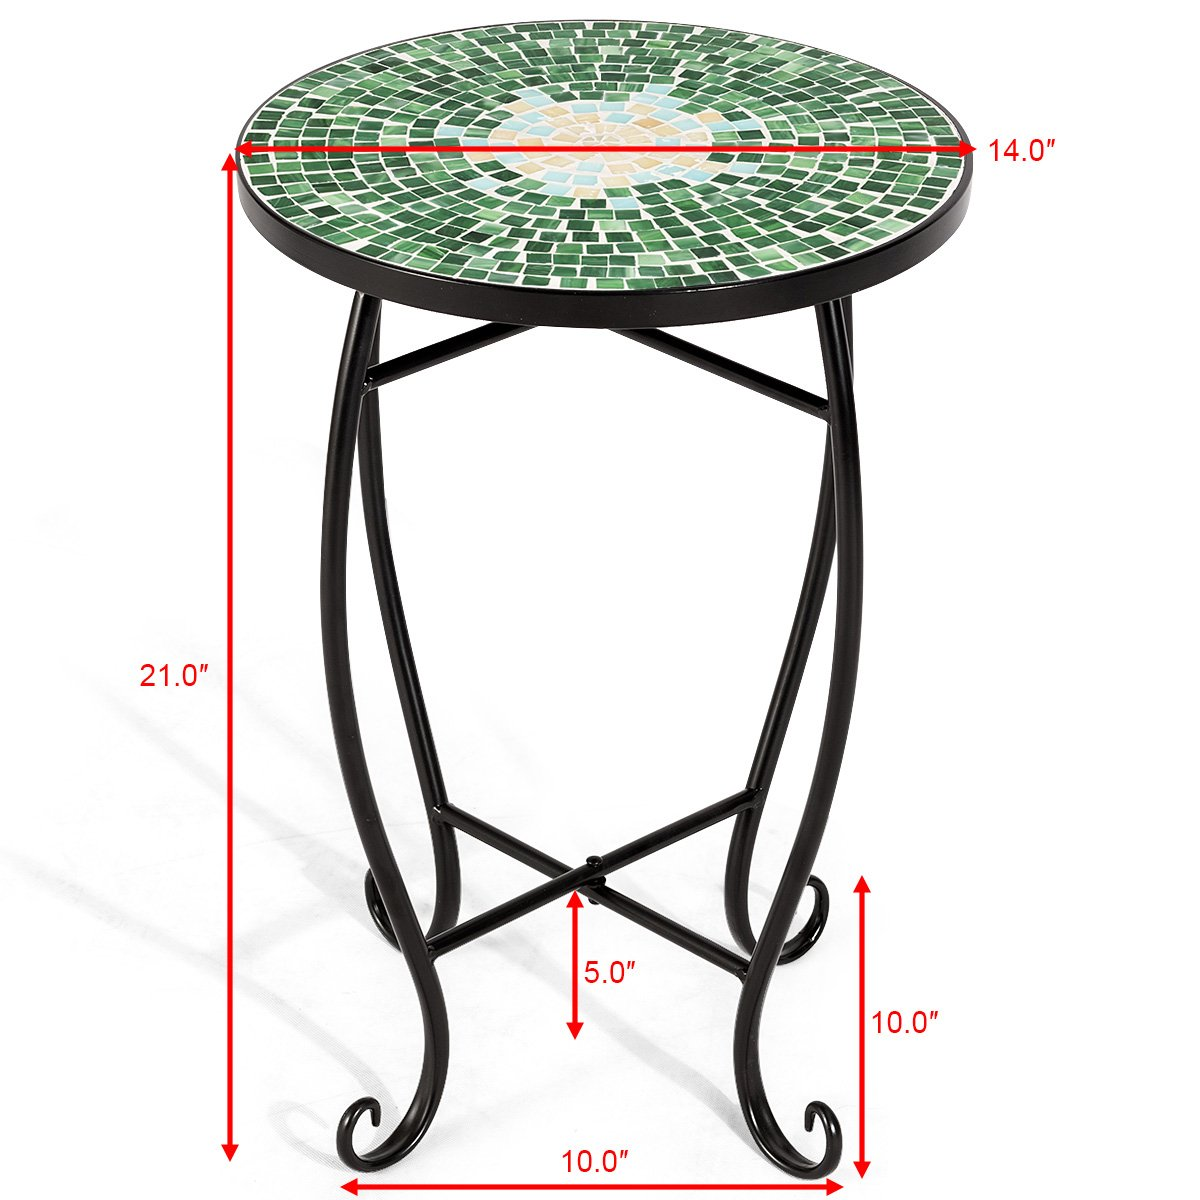 Giantex Mosaic Round Side Accent Table Patio Plant Stand Porch Beach Theme Balcony Back Deck Pool Decor Metal Cobalt Glass Top Indoor Outdoor Coffee End Table (Secret Garden)